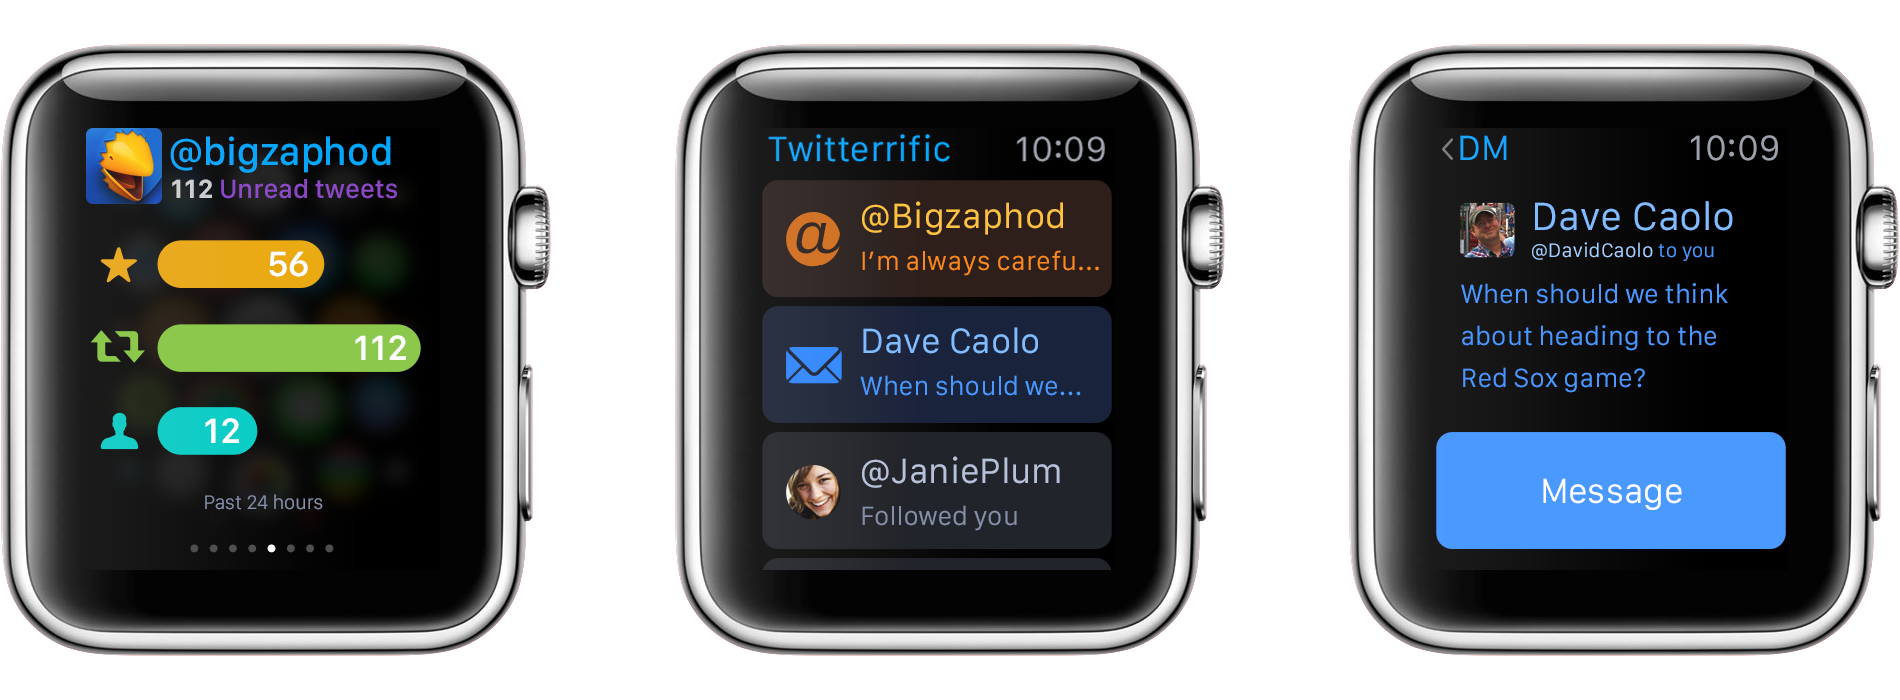 Twitterrific para el adelanto 003 de Apple Watch